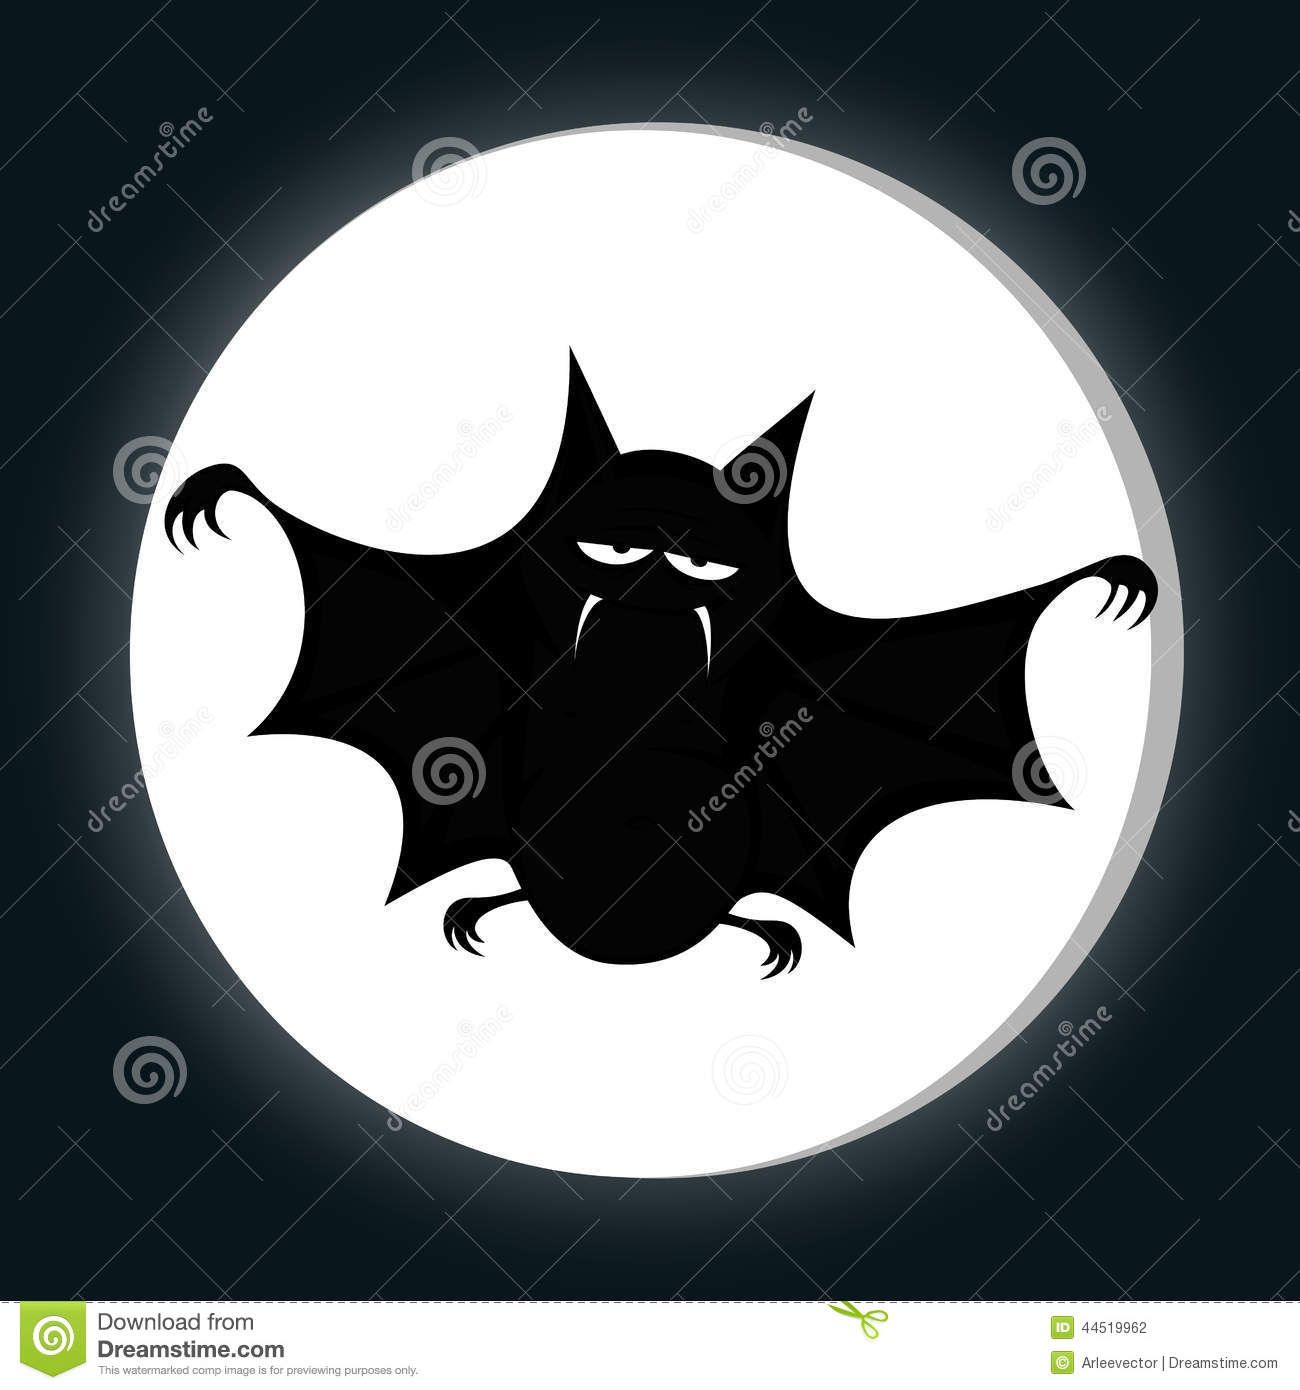 Stock Illustration Funny Freaky Bat Big Black Fat Smiling You Full Moon Midnight Silhouette Image44519962 on vampire bats cartoon